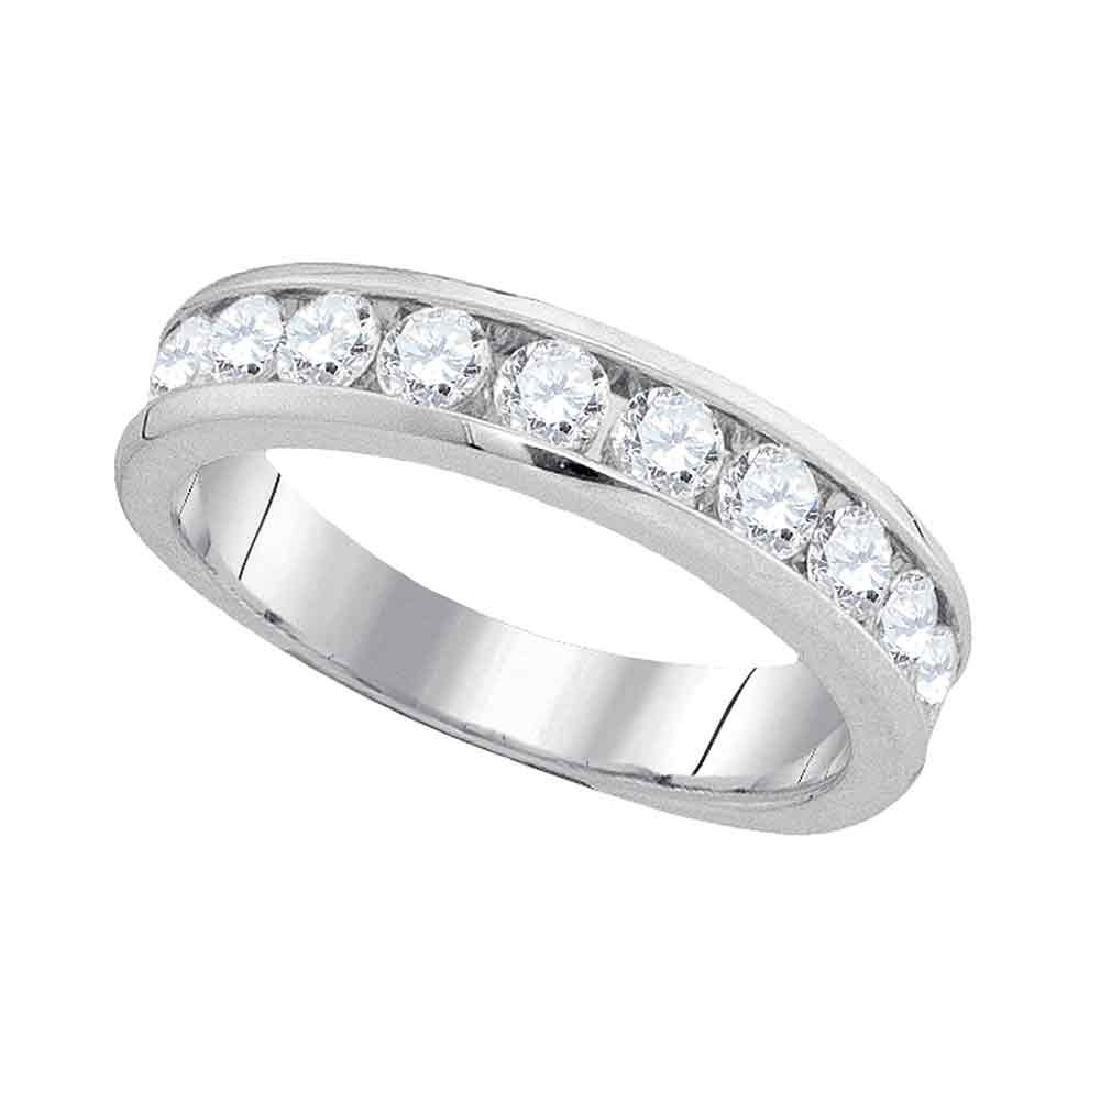 1.03 CTW Diamond Wedding Ring 14KT White Gold -